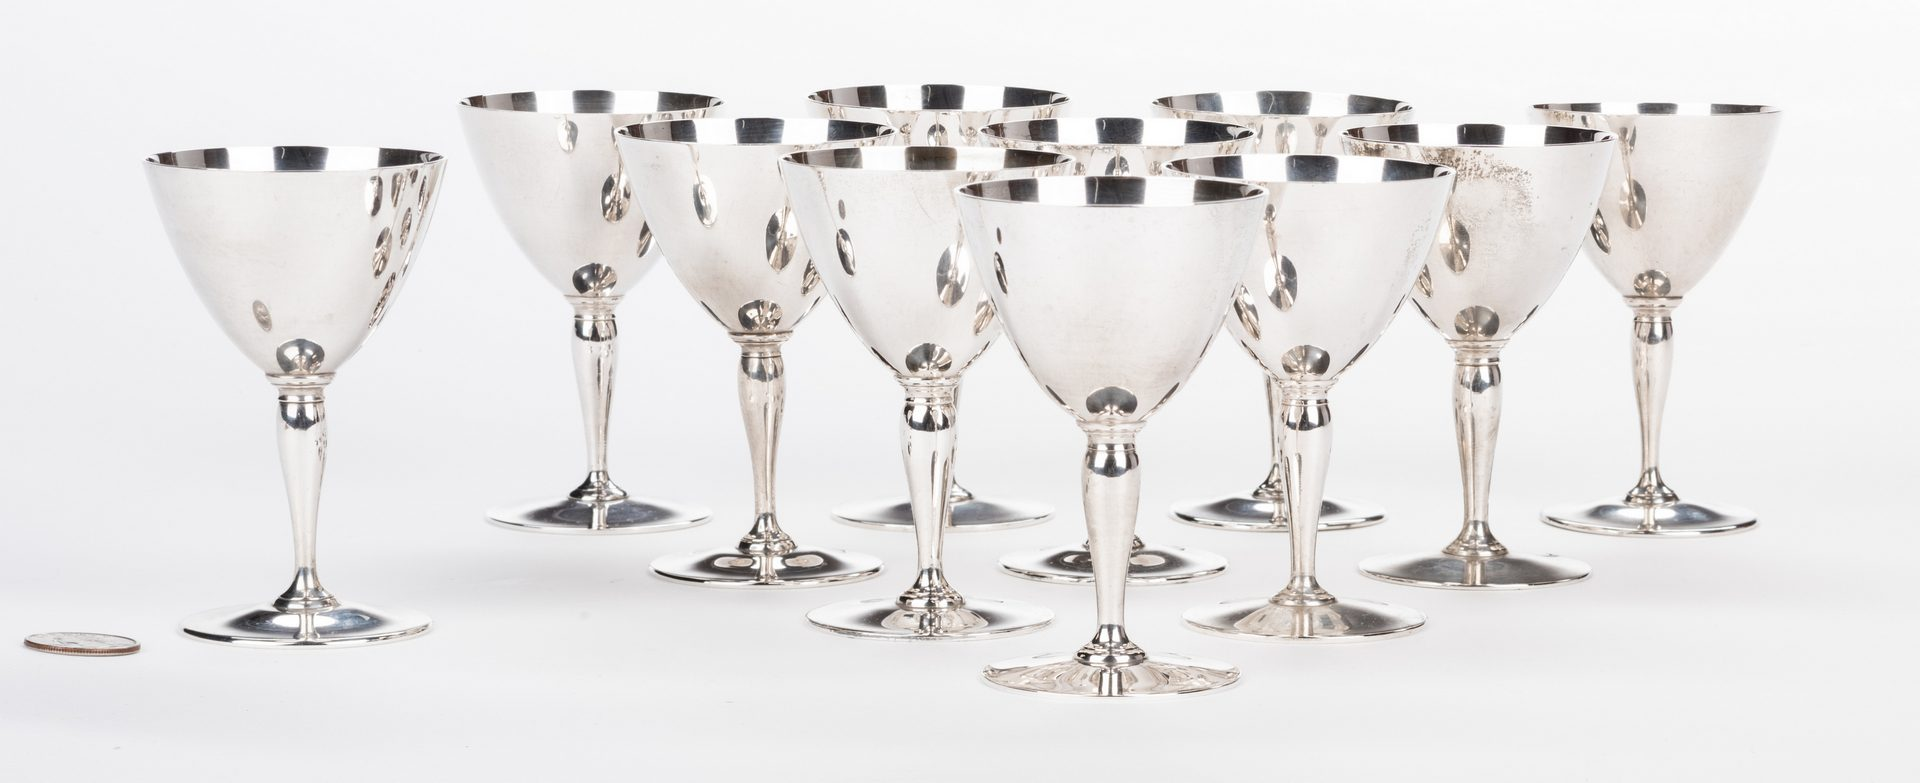 Lot 61: Set of 11 Tiffany & Co Sterling Silver Goblets